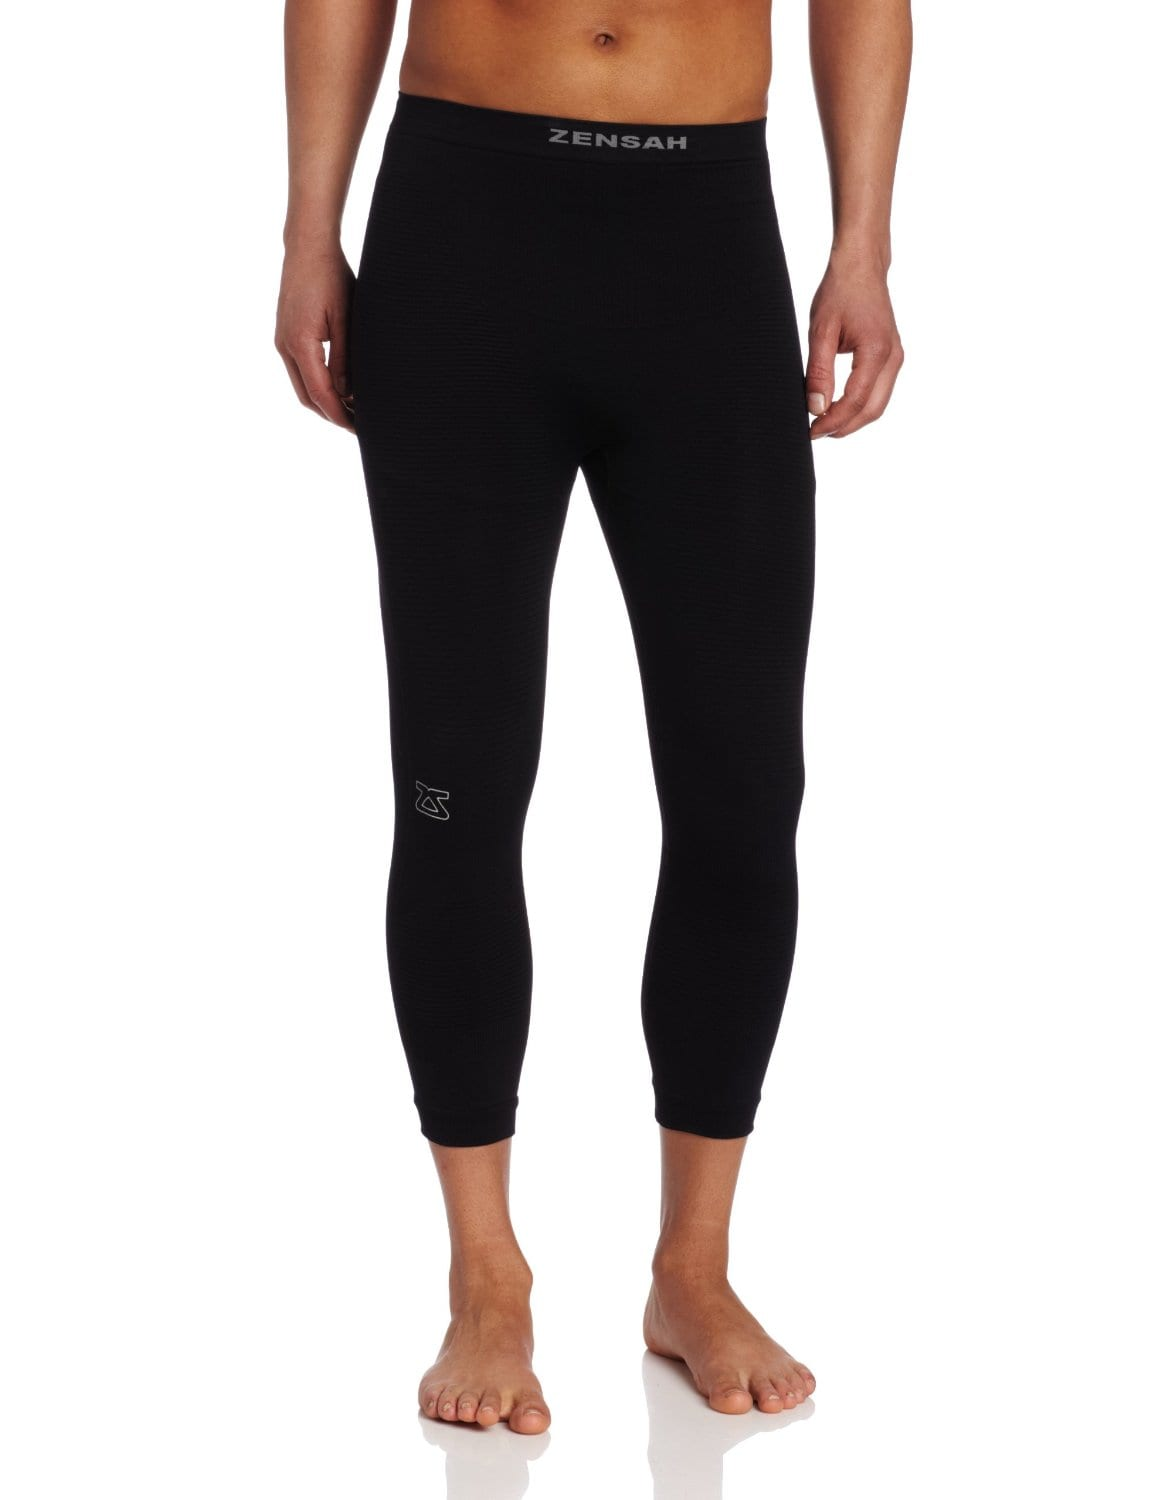 Zensah High Compression tight review